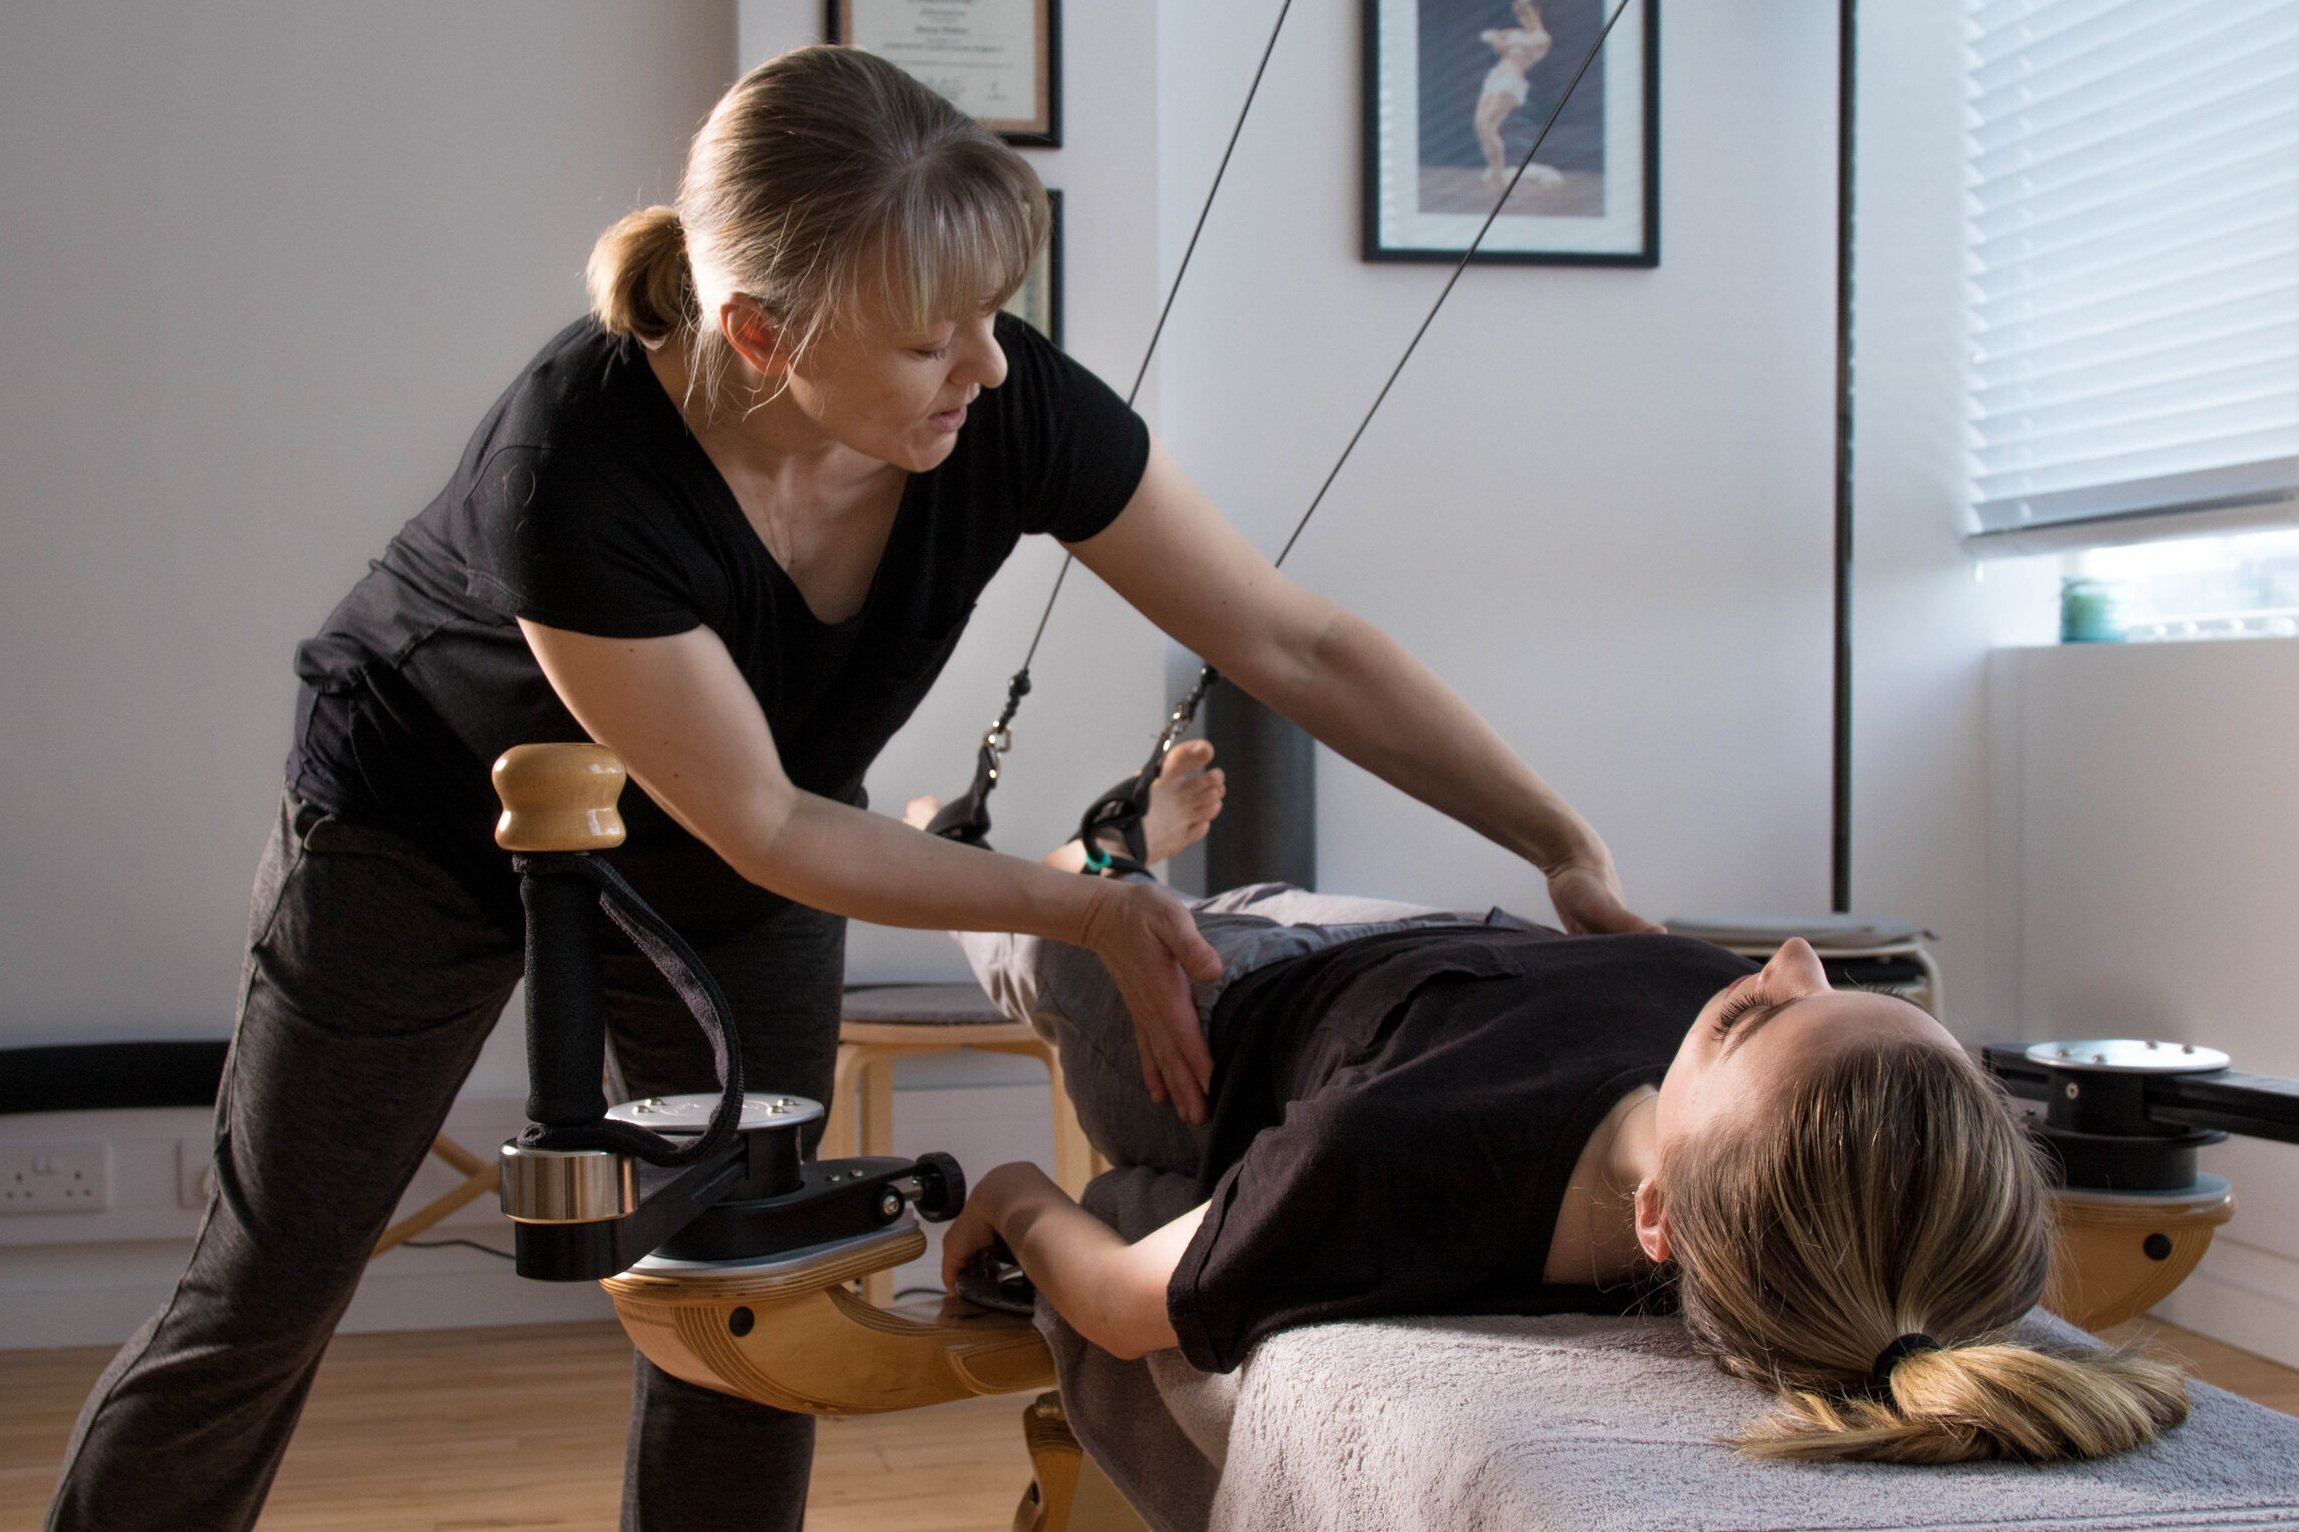 Ready to try something new? - Book a FREE 30min taster session!Or a package of 4 sessions for the full Gyrotonic experience